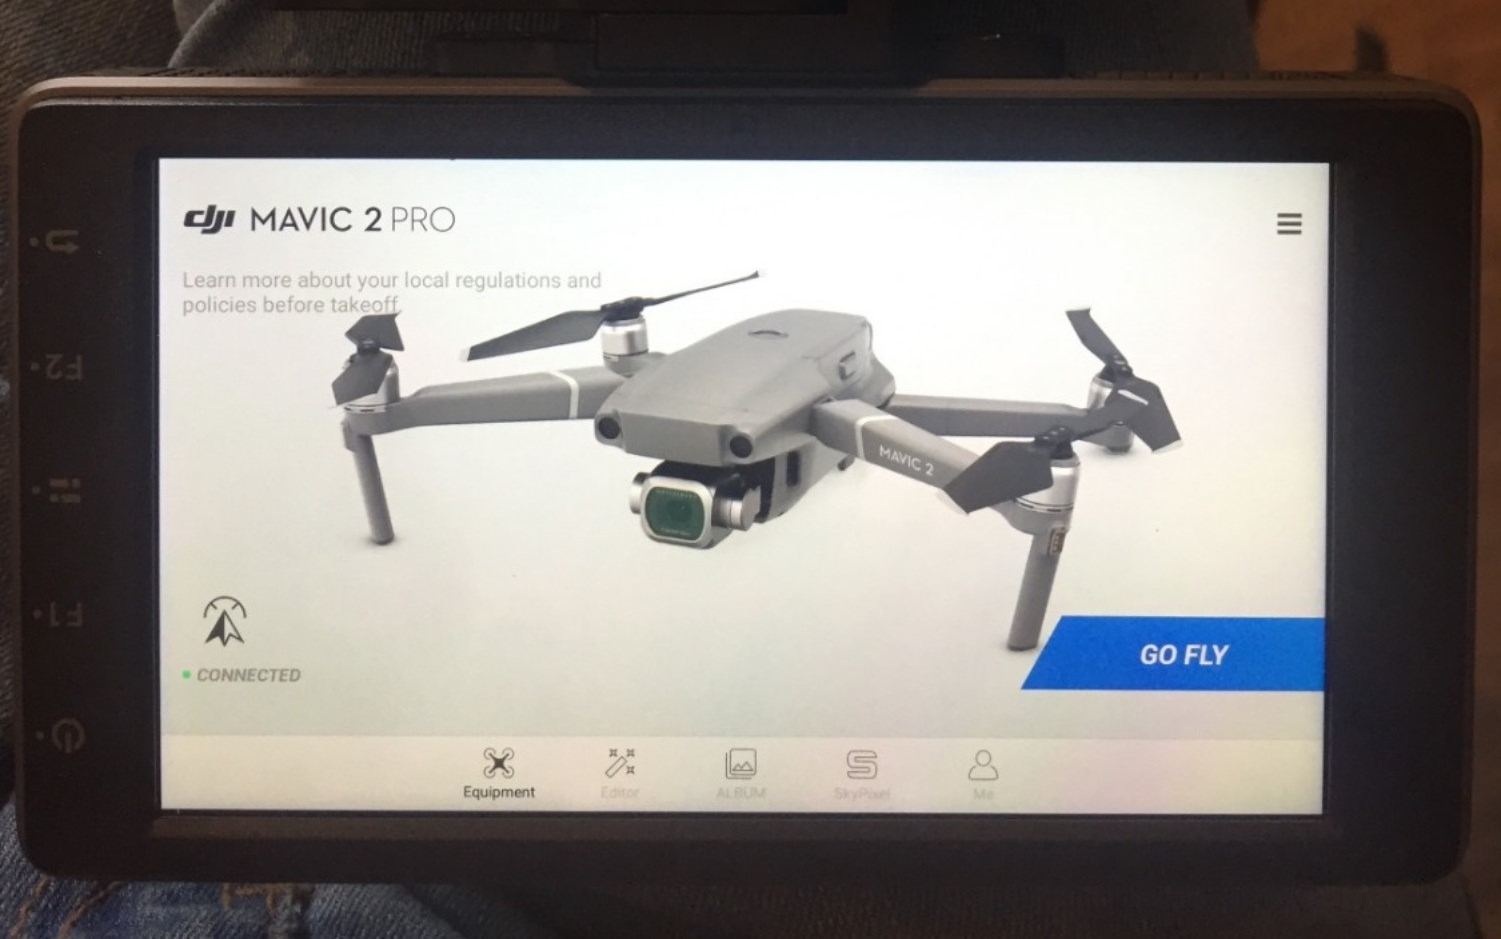 DJI's CrystalSky works with the DJI Mavic 2 Pro and Zoom as